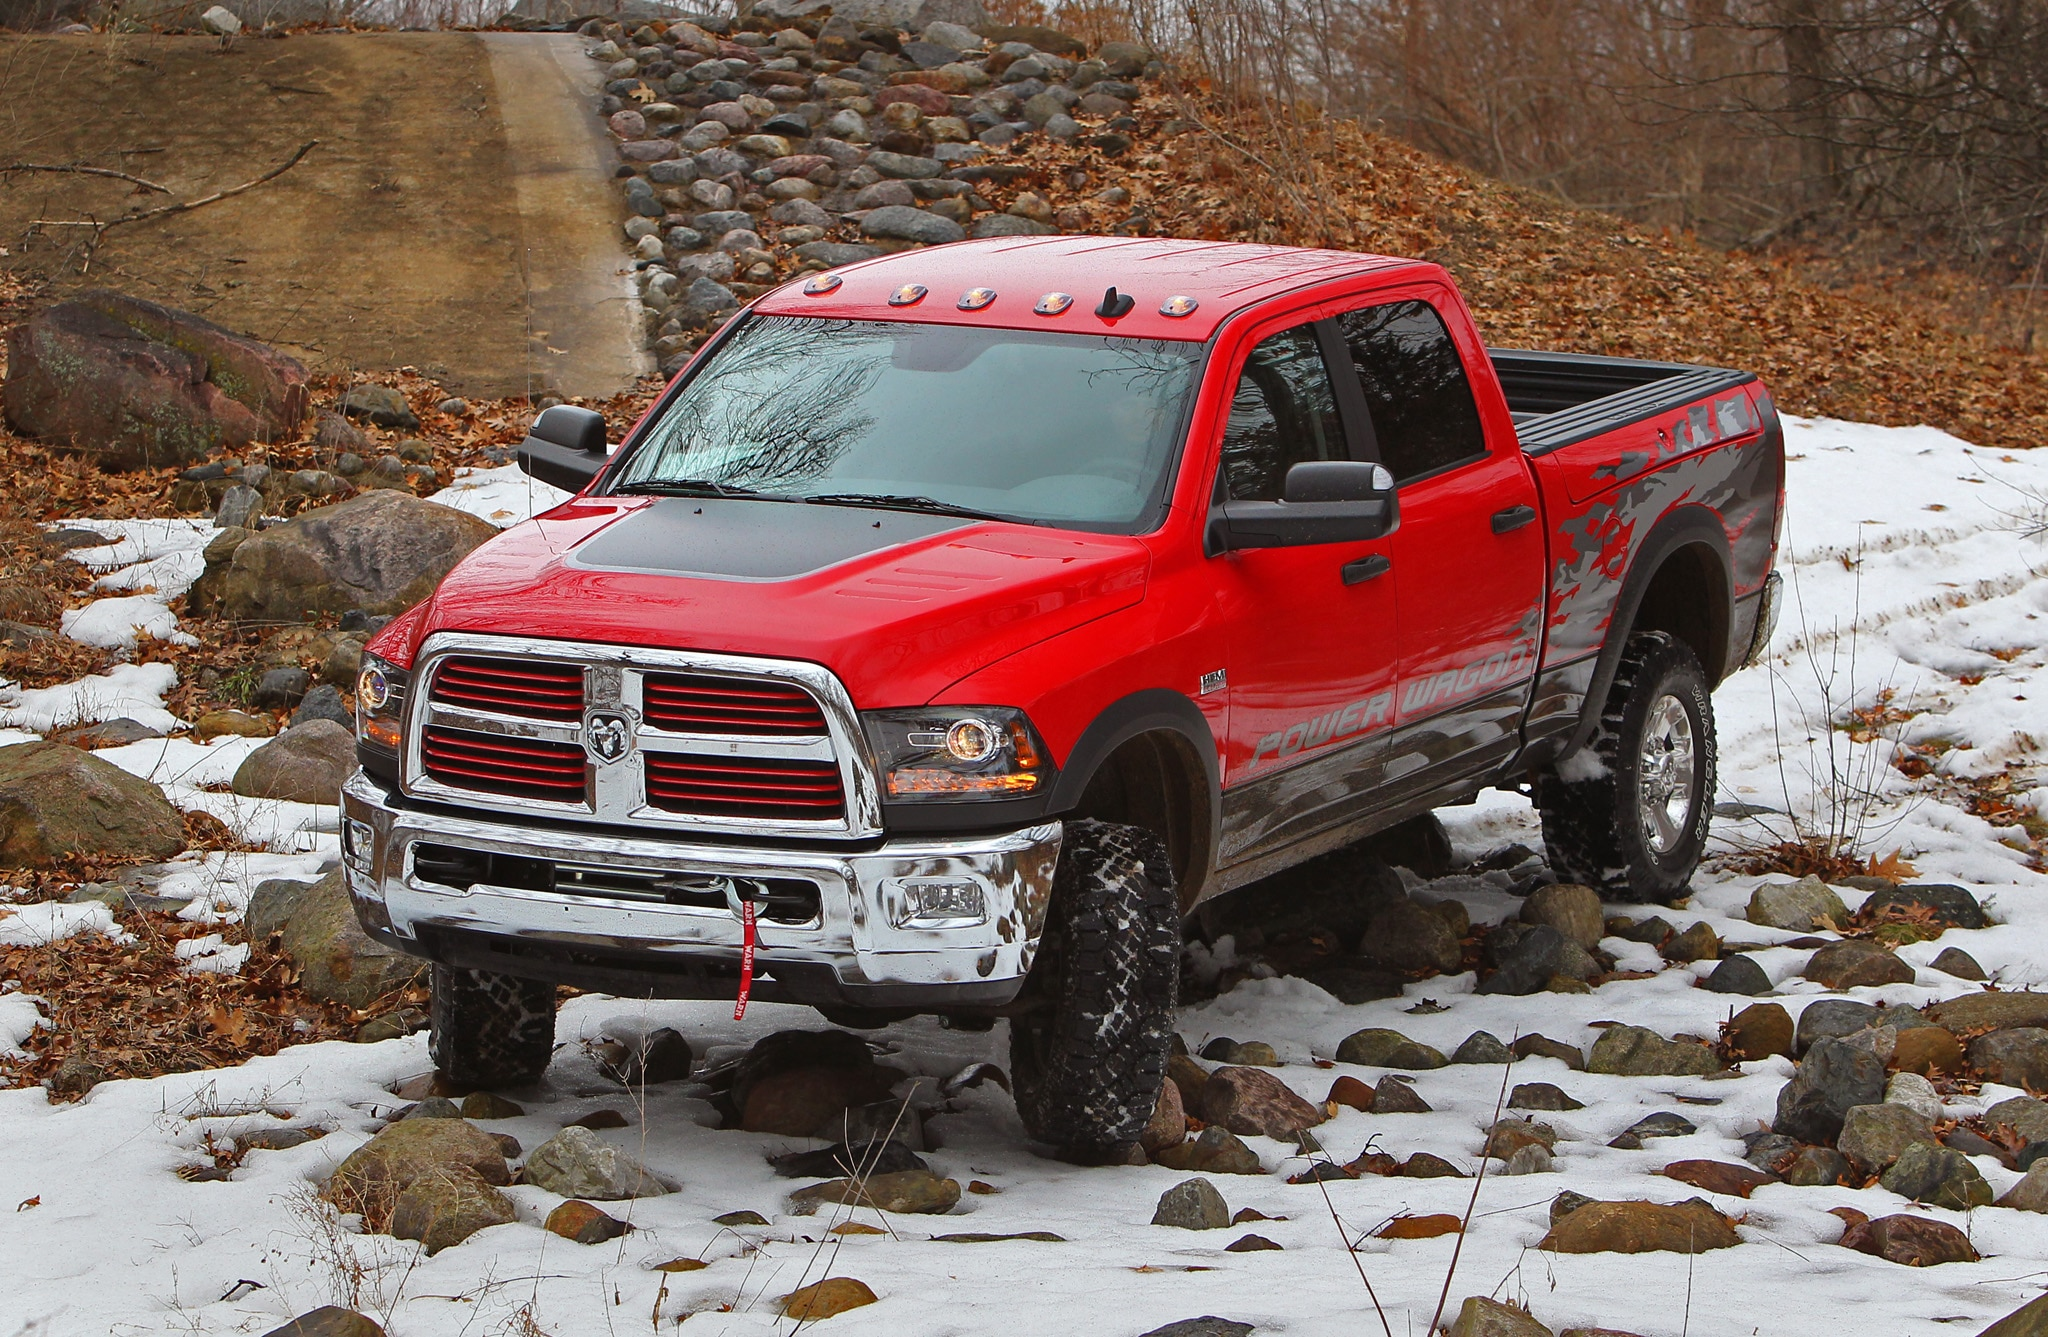 2014 Ram 2500 Power Wagon front top view